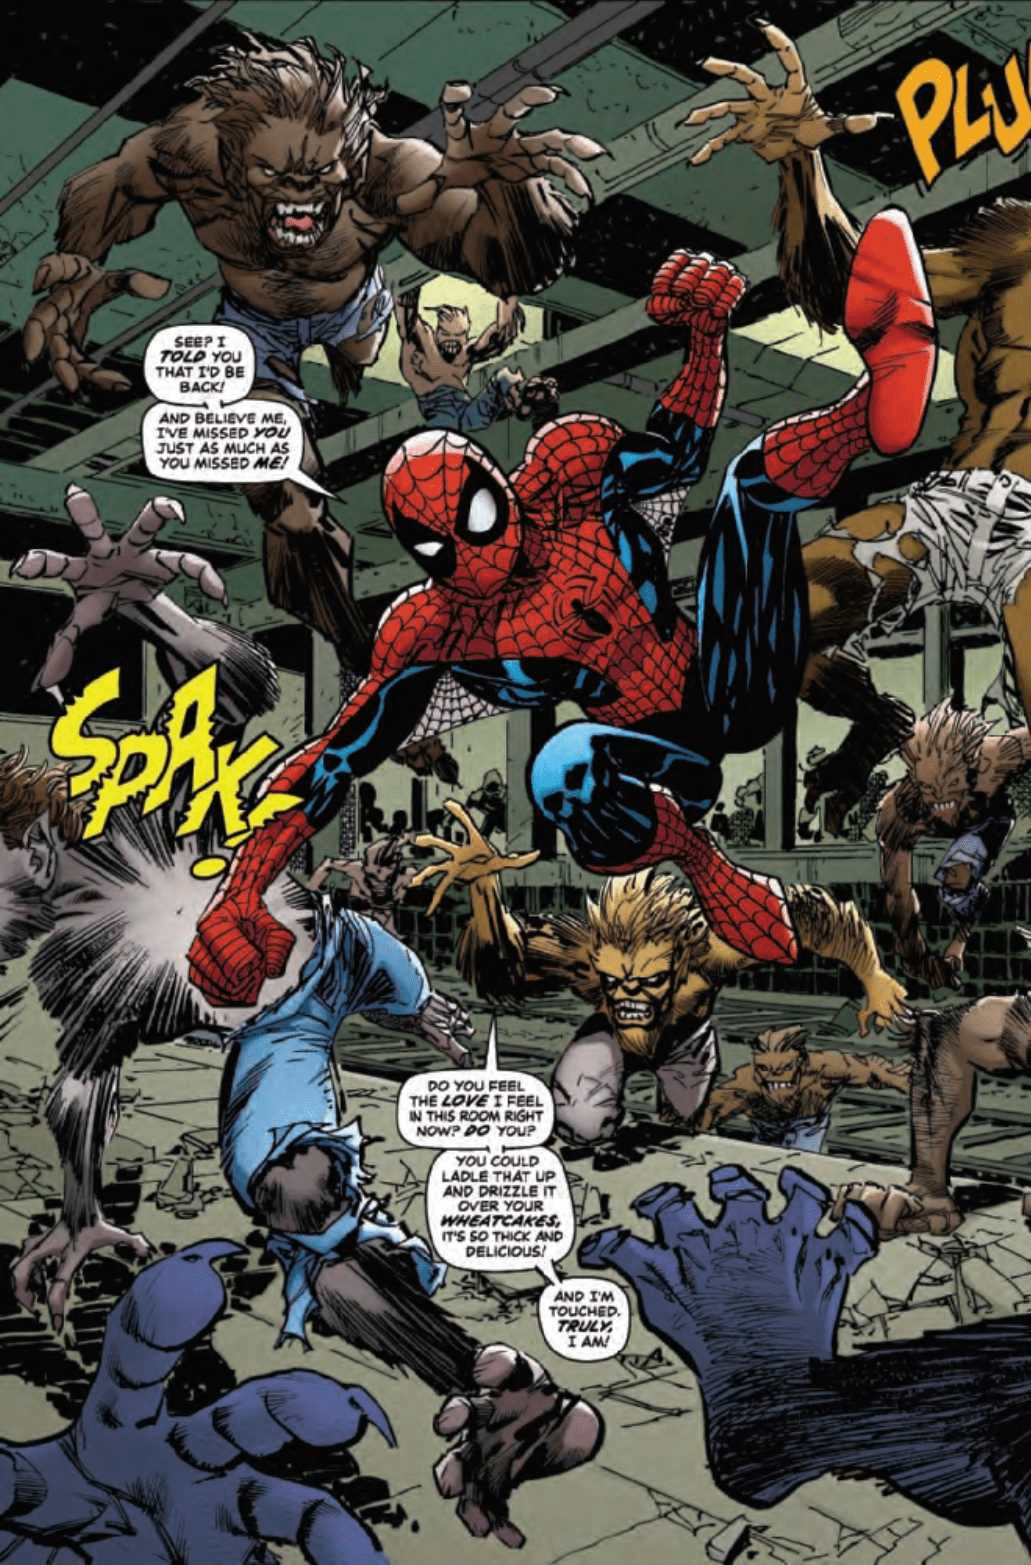 AMAZING SPIDER-MAN: GOING BIG #1 - Welcome Back To The 90s 2